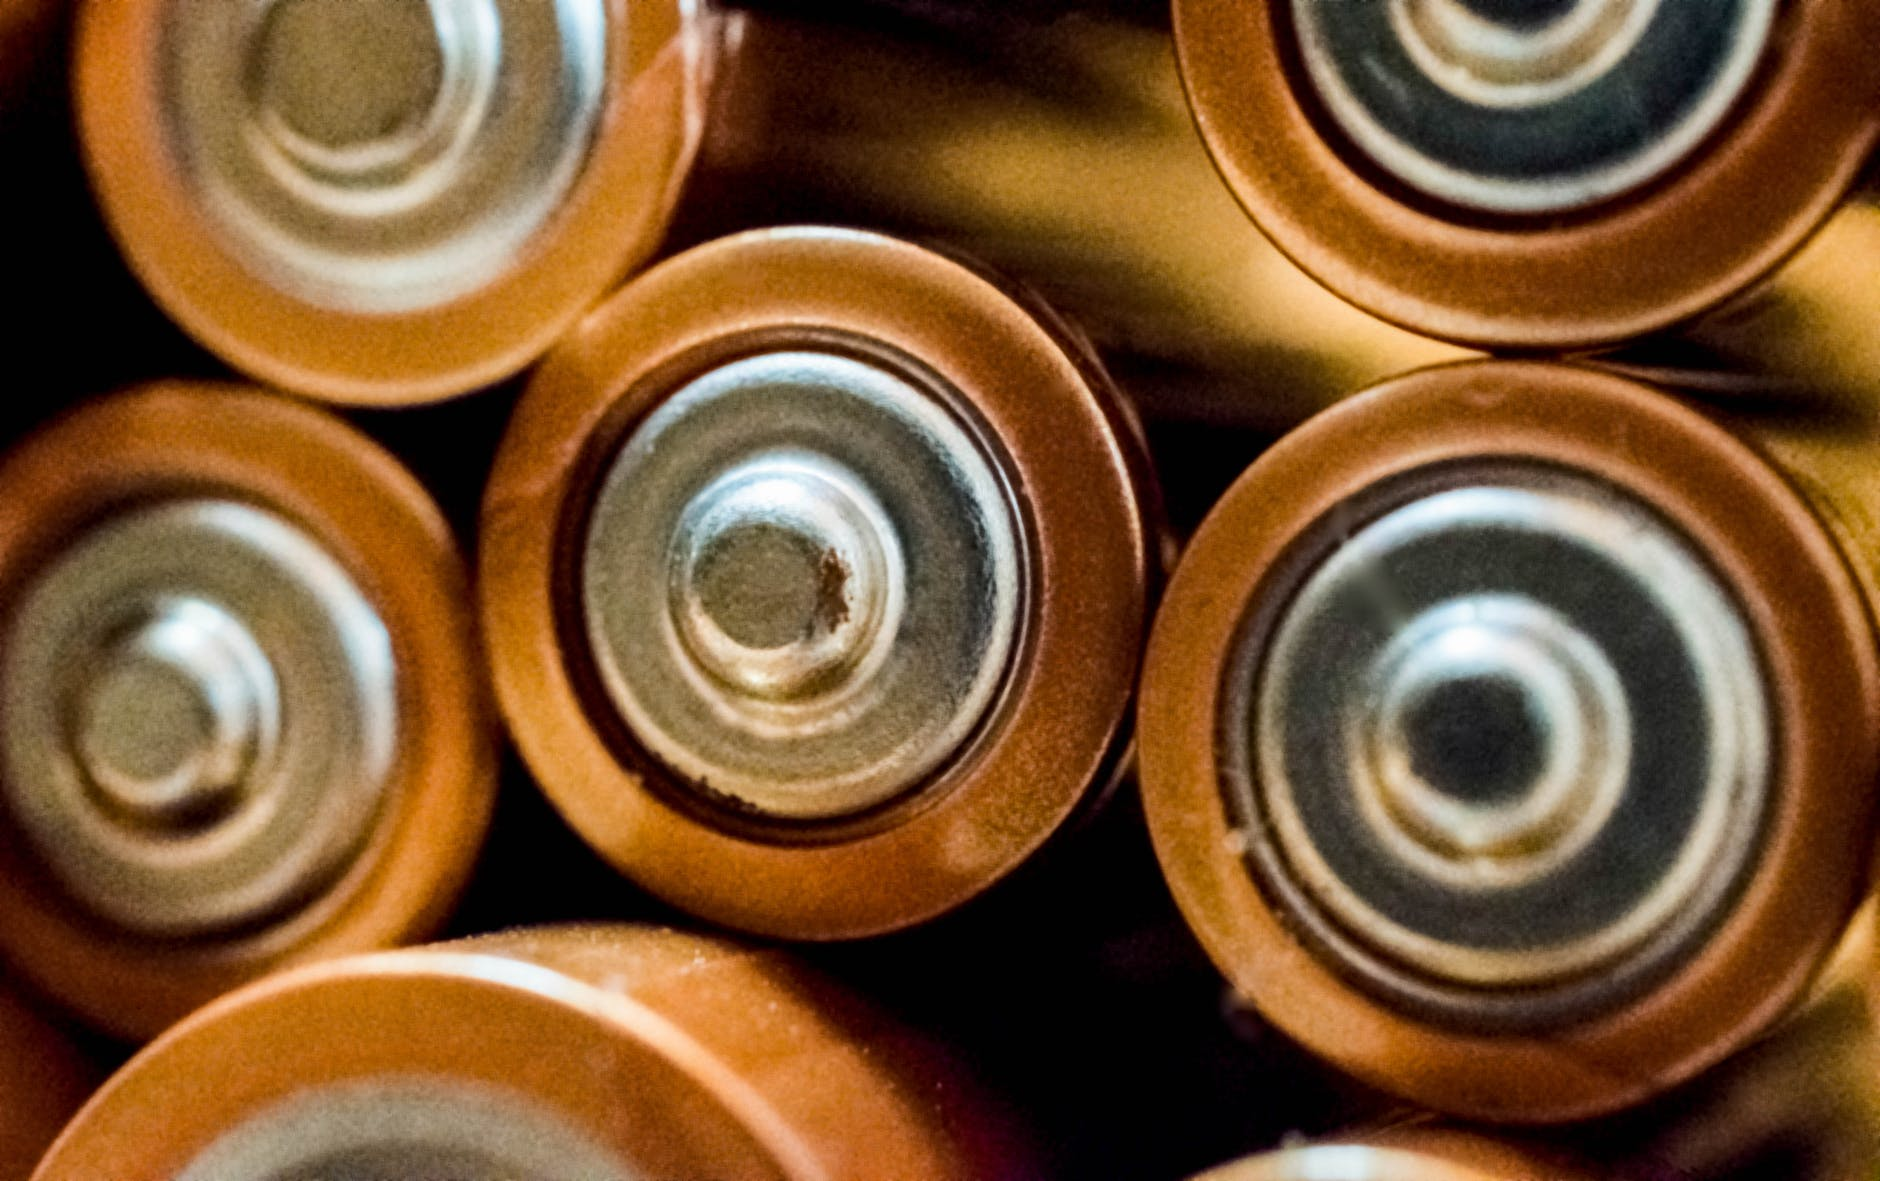 a close-up of the head of a AA battery